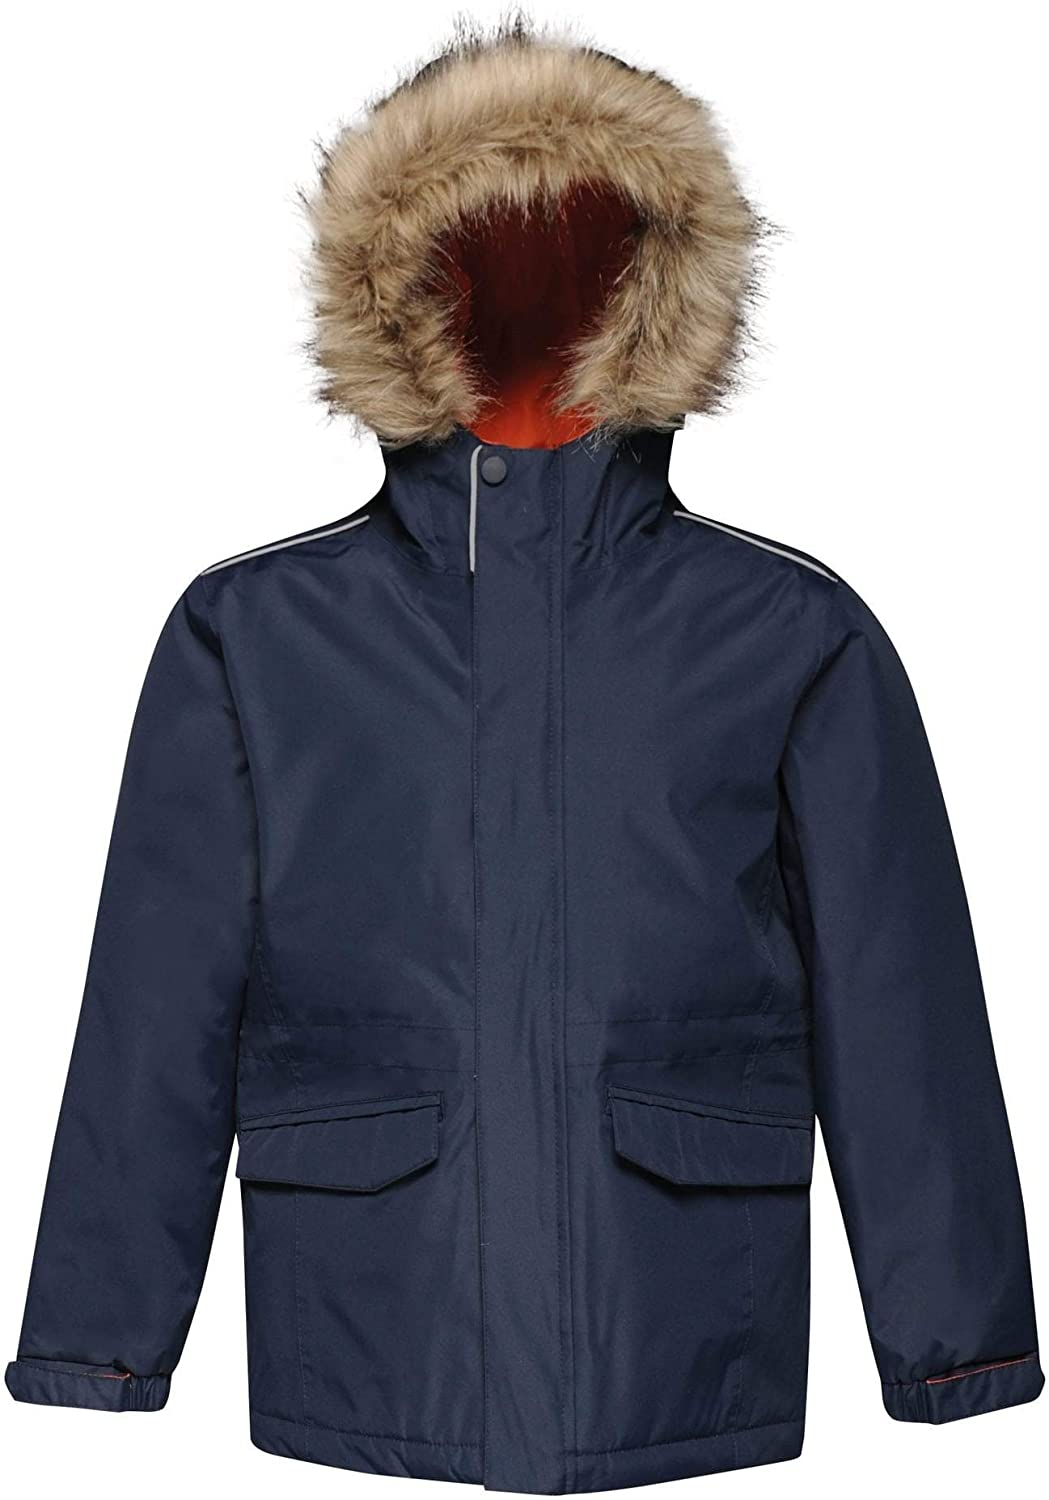 Regatta Childrens Professional Kids Cadet Waterproof Insulated Faux Fur Hooded Parka Jacket With Safety Reflective Detail